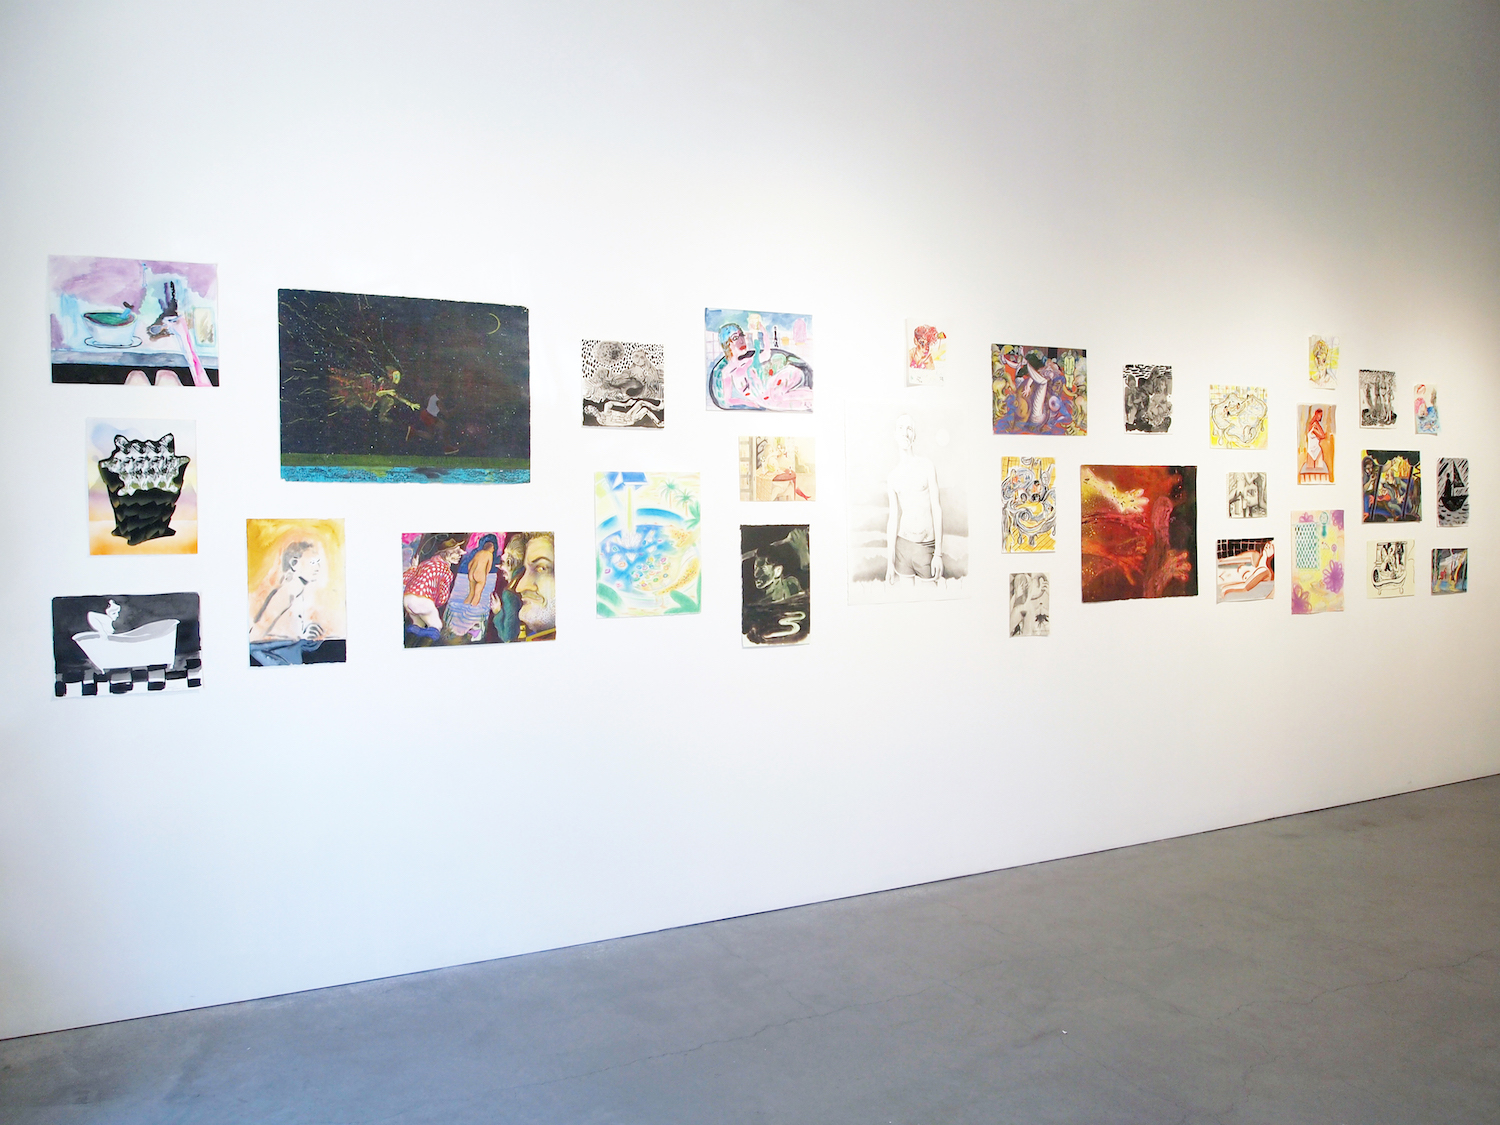 Installation views of Bathers at Bass & Reiner in San Francisco at the Minnesota Street Project, 2018